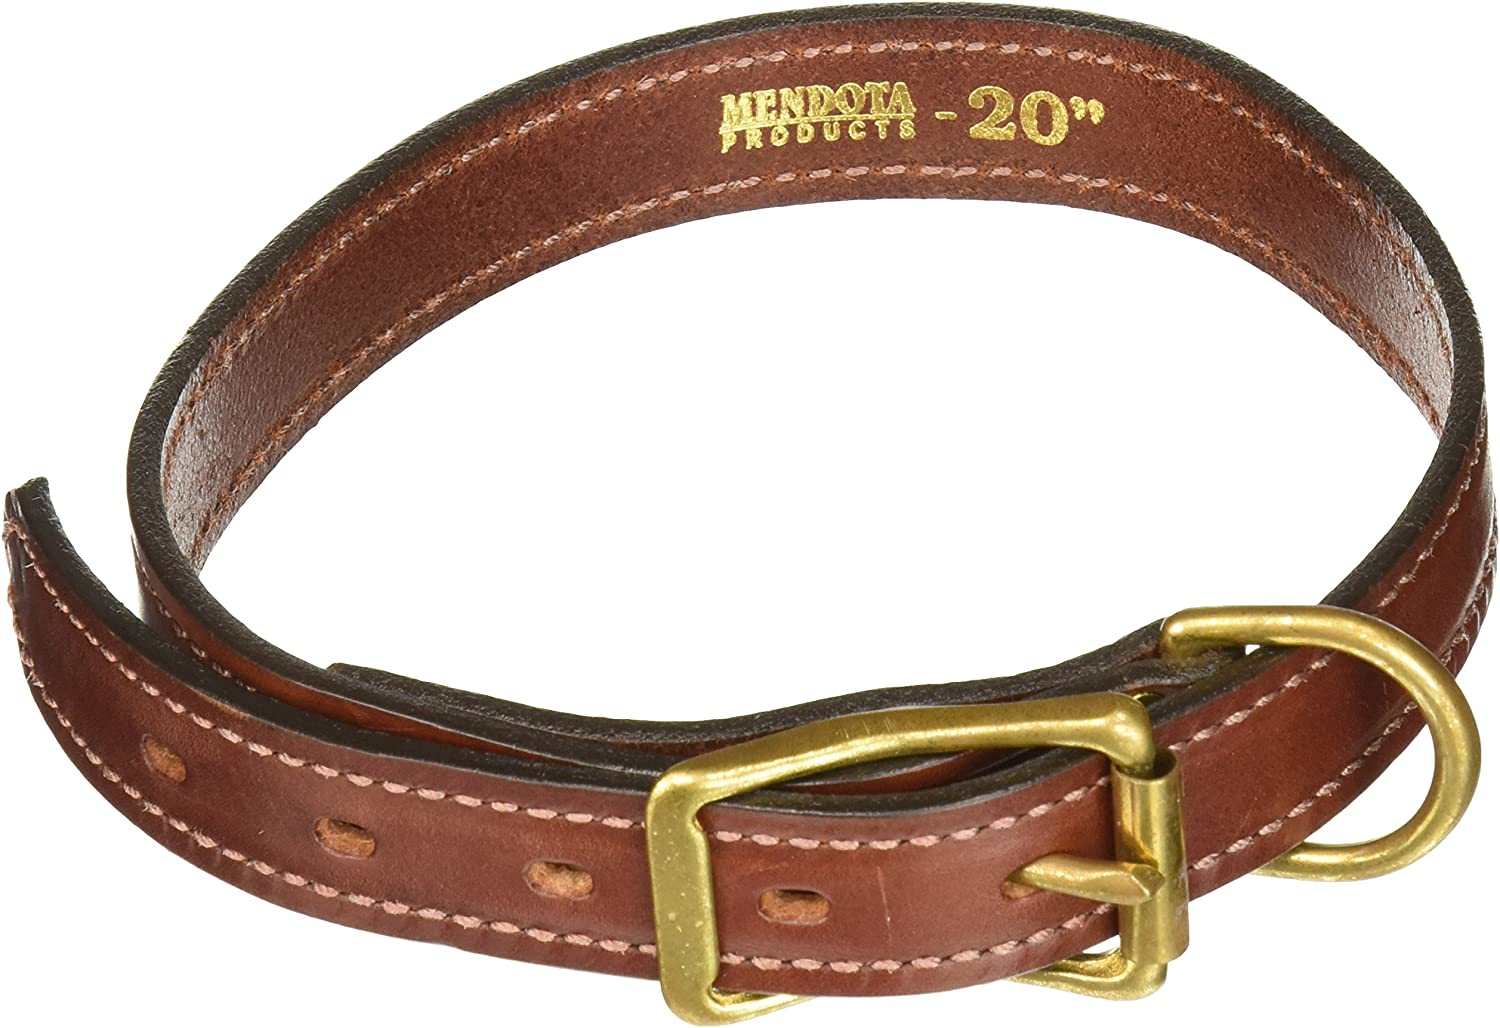 Mendota Products Standard Dog Collar, 1Inch by 20Inch, Chestnut